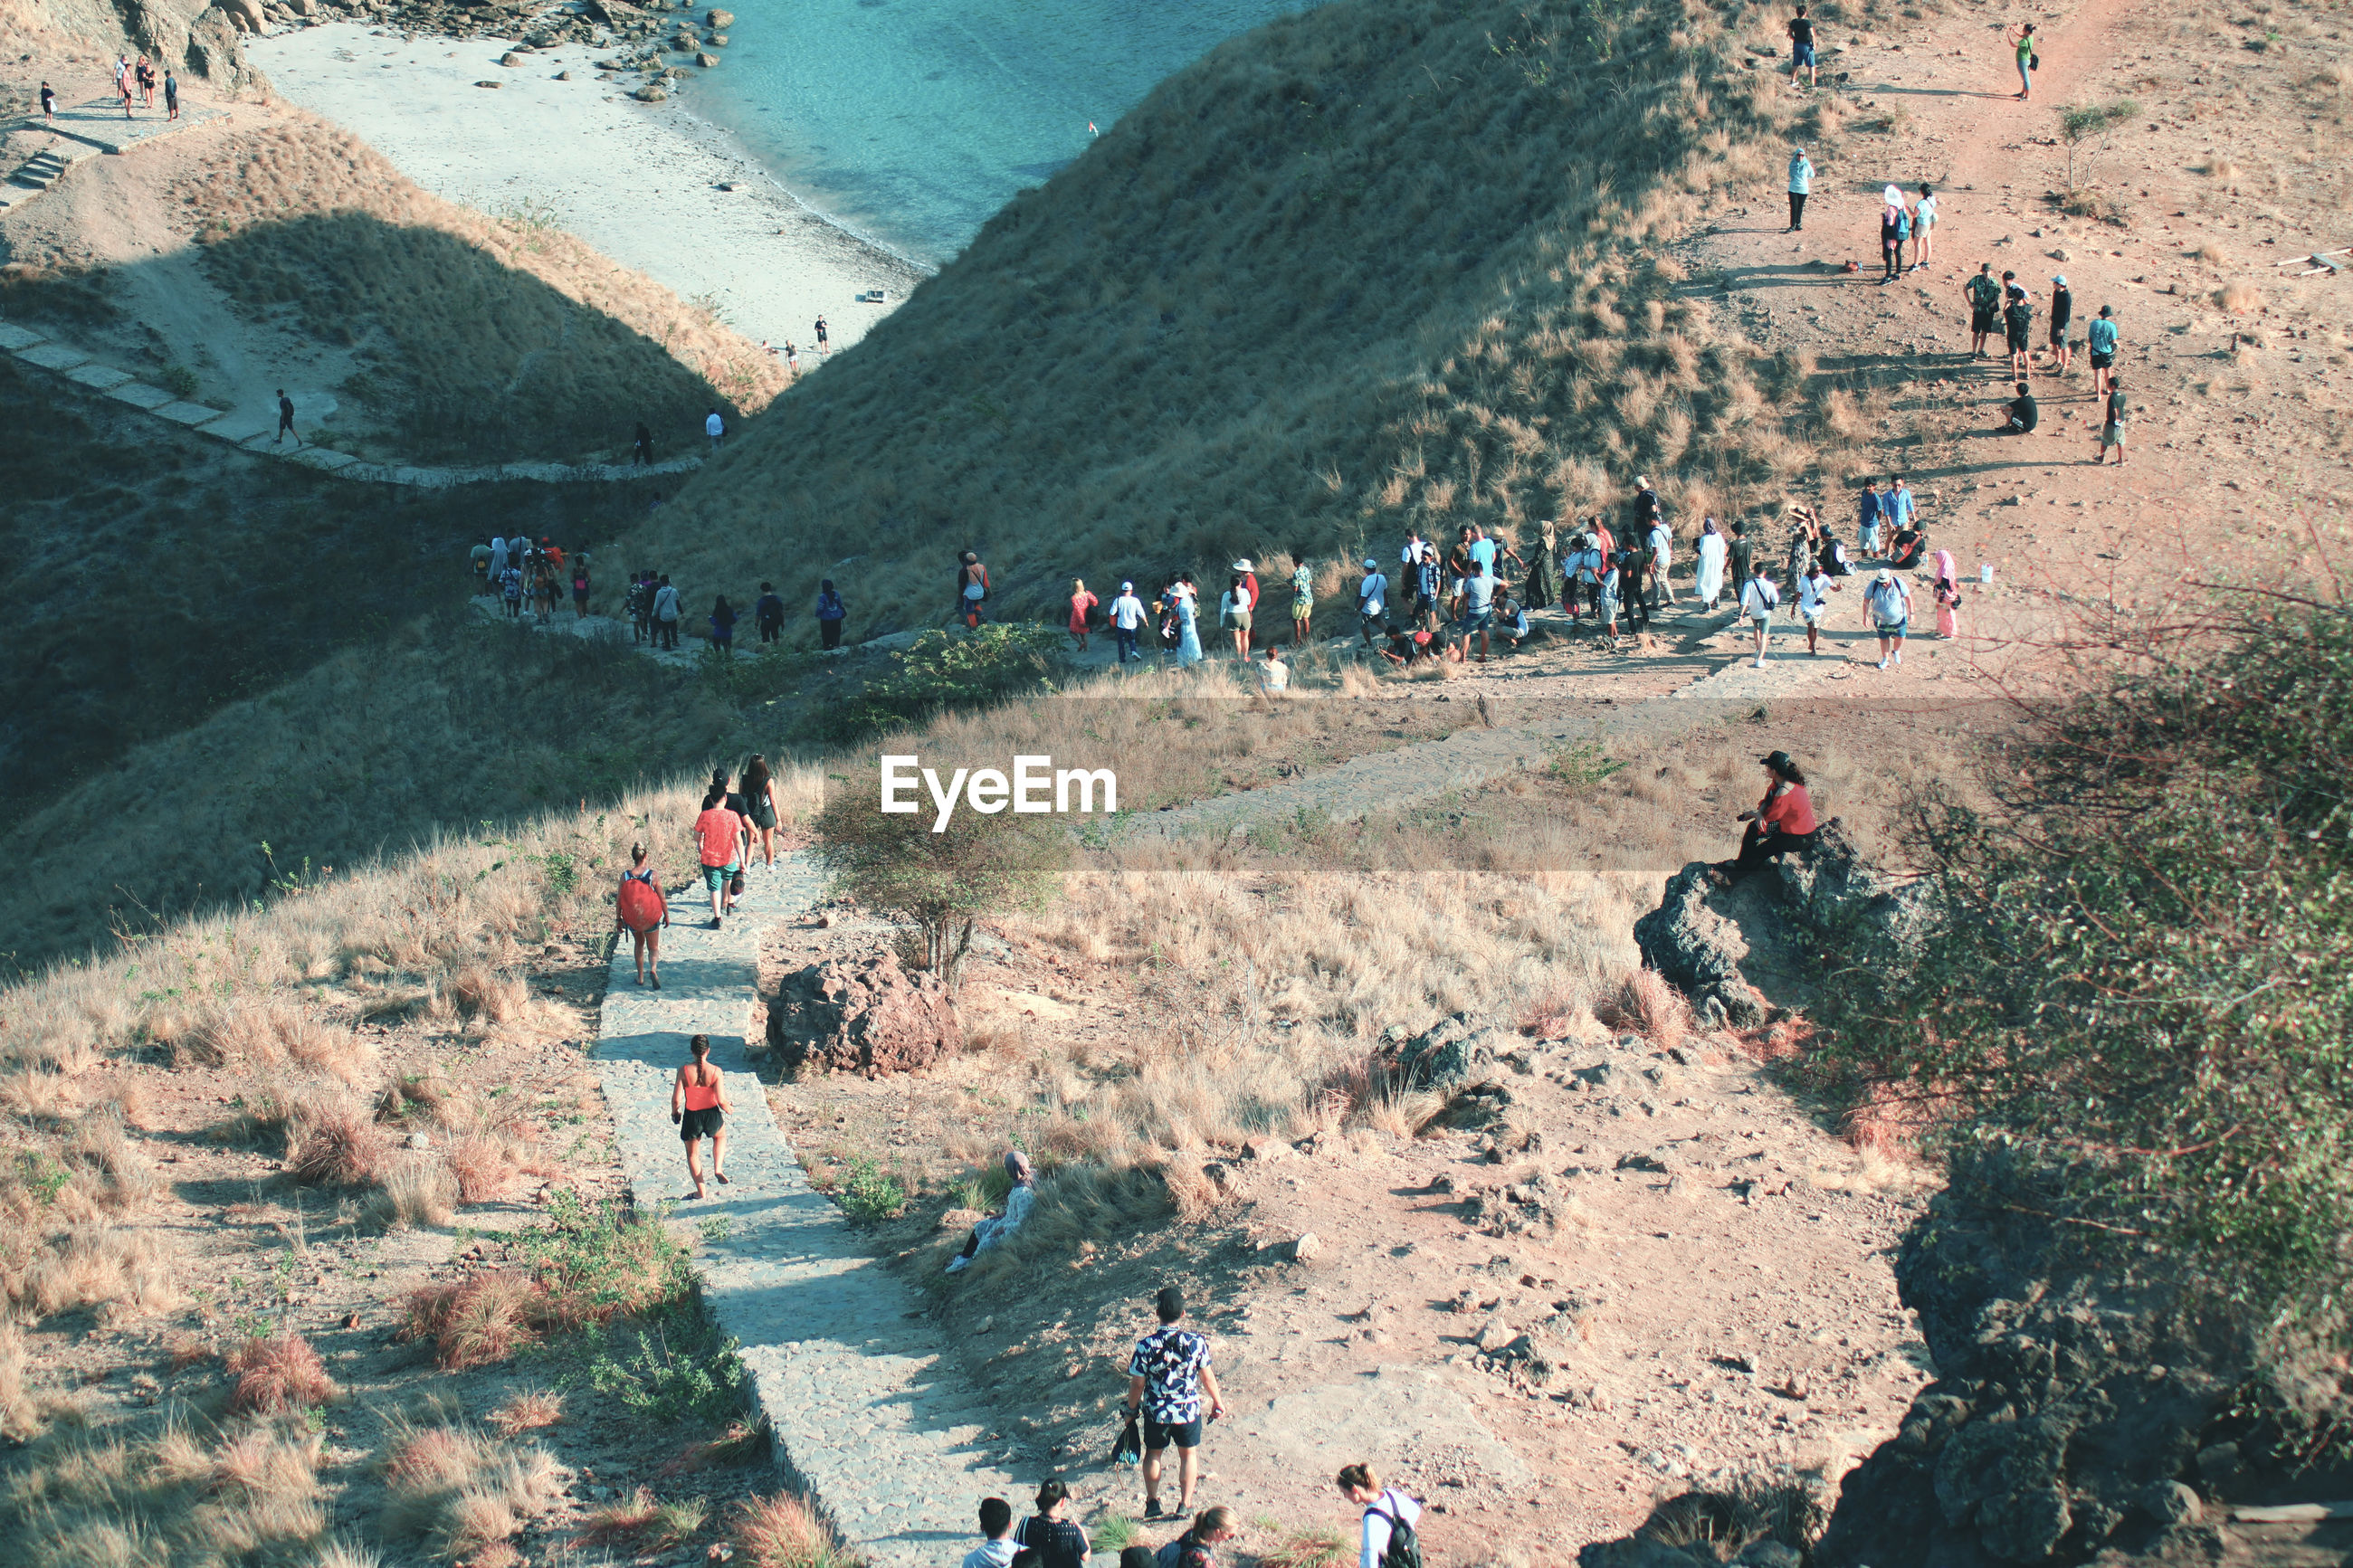 High angle view of people on mountain road